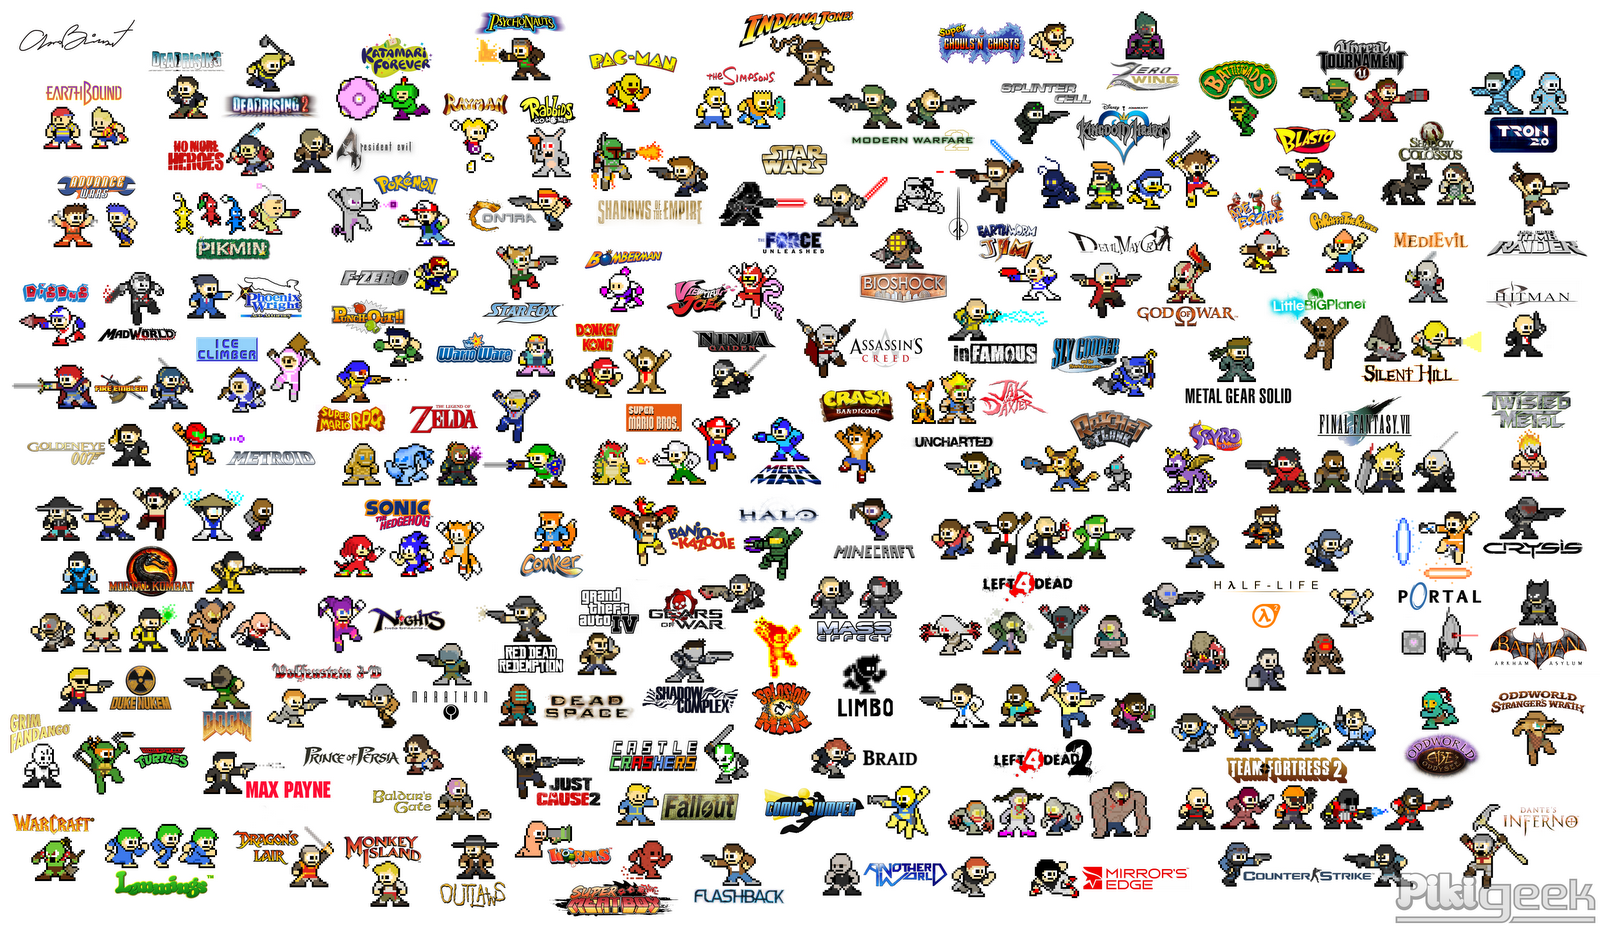 Mega Man Vs. Every Big Names (And Some Not-So-Big Ones) In Gaming